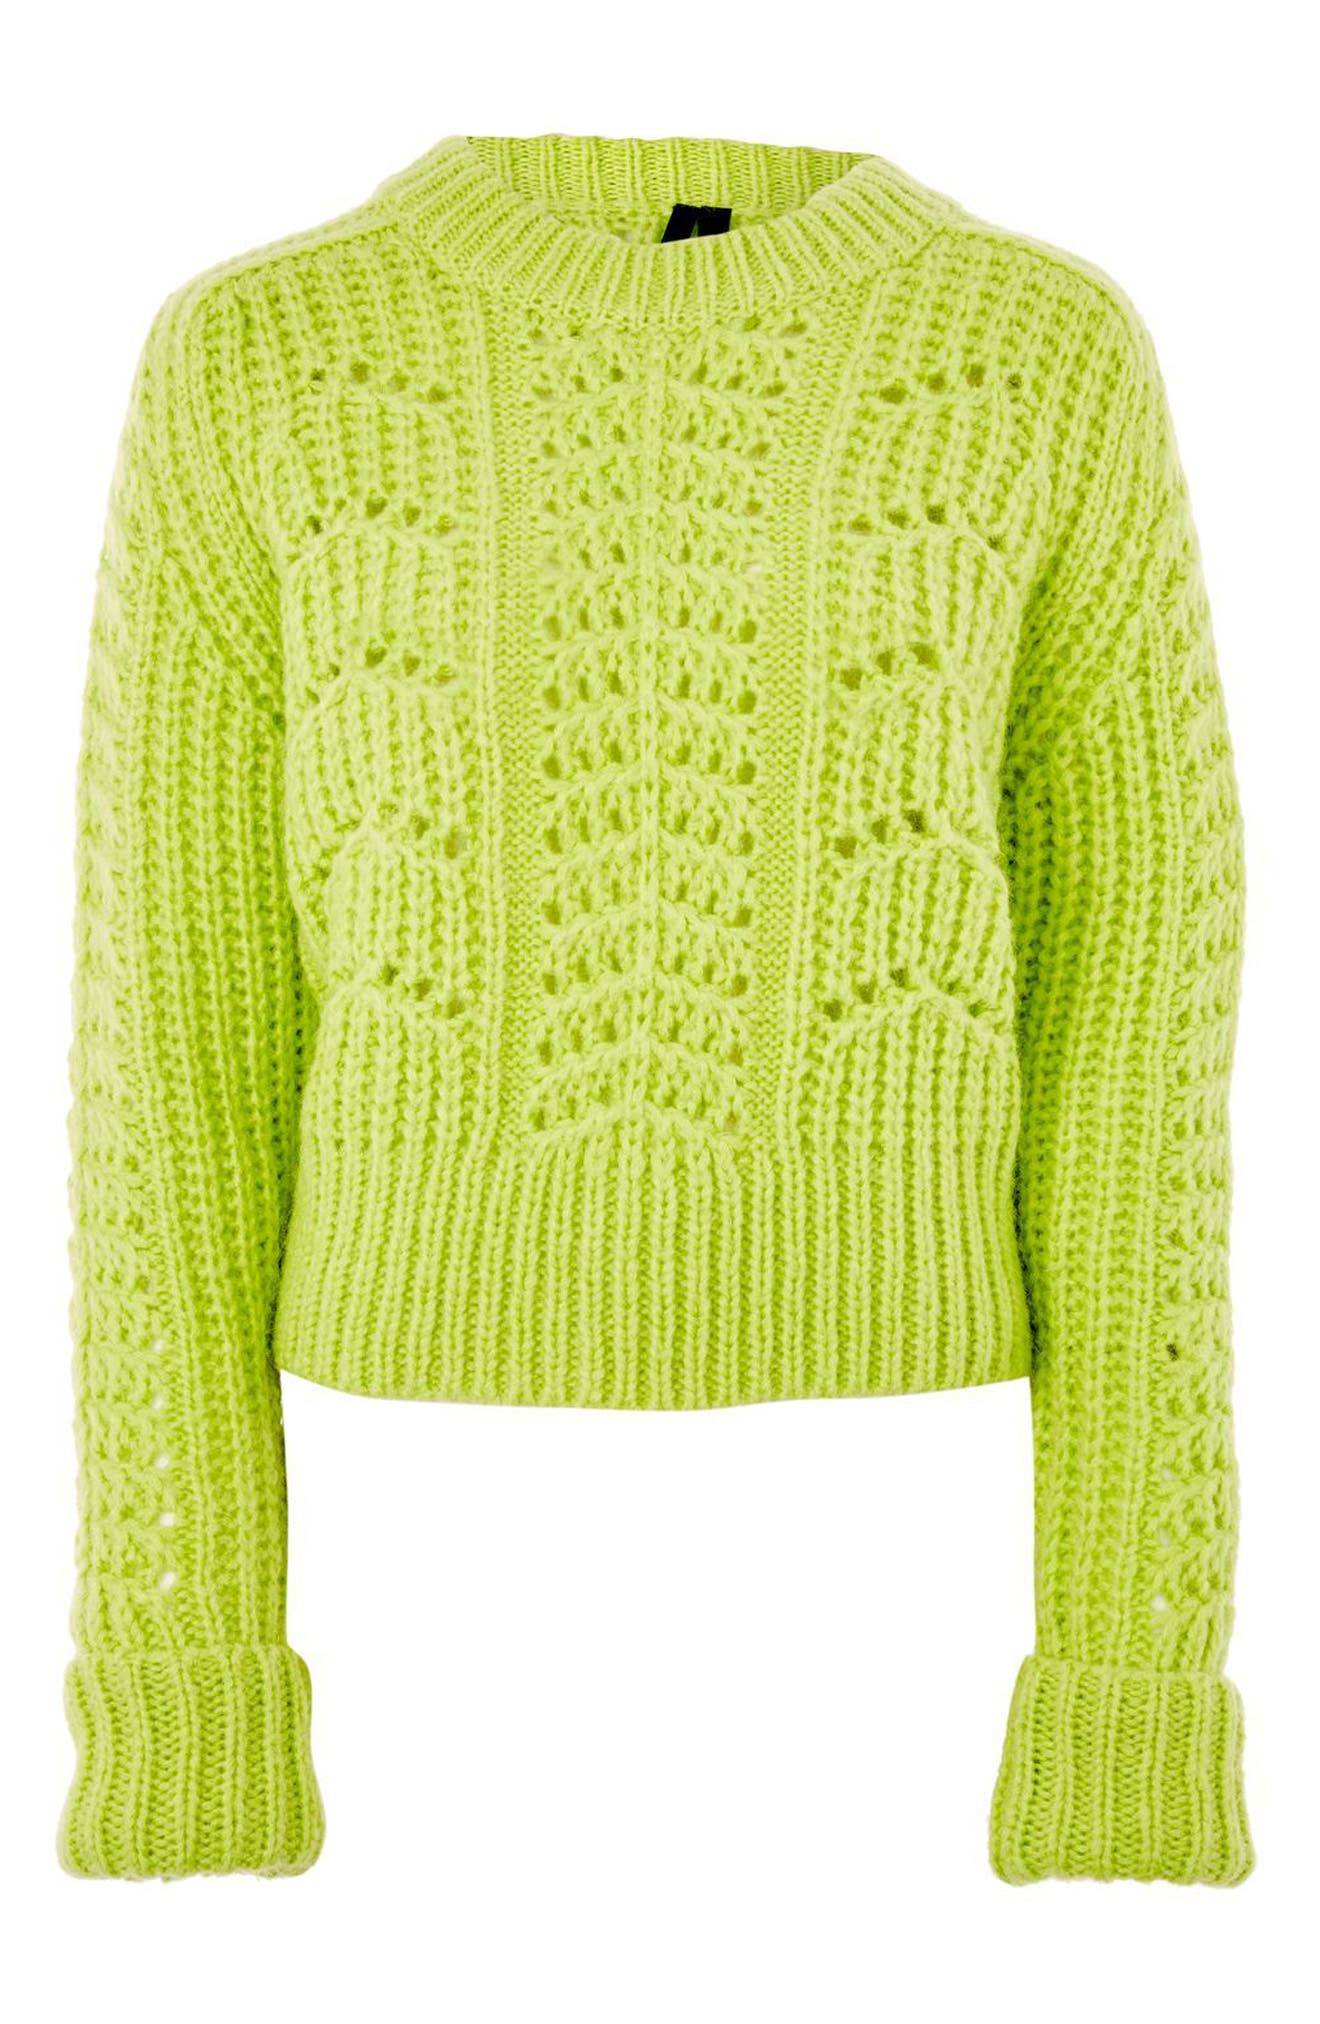 Cable Knit Sweater,                             Main thumbnail 1, color,                             320